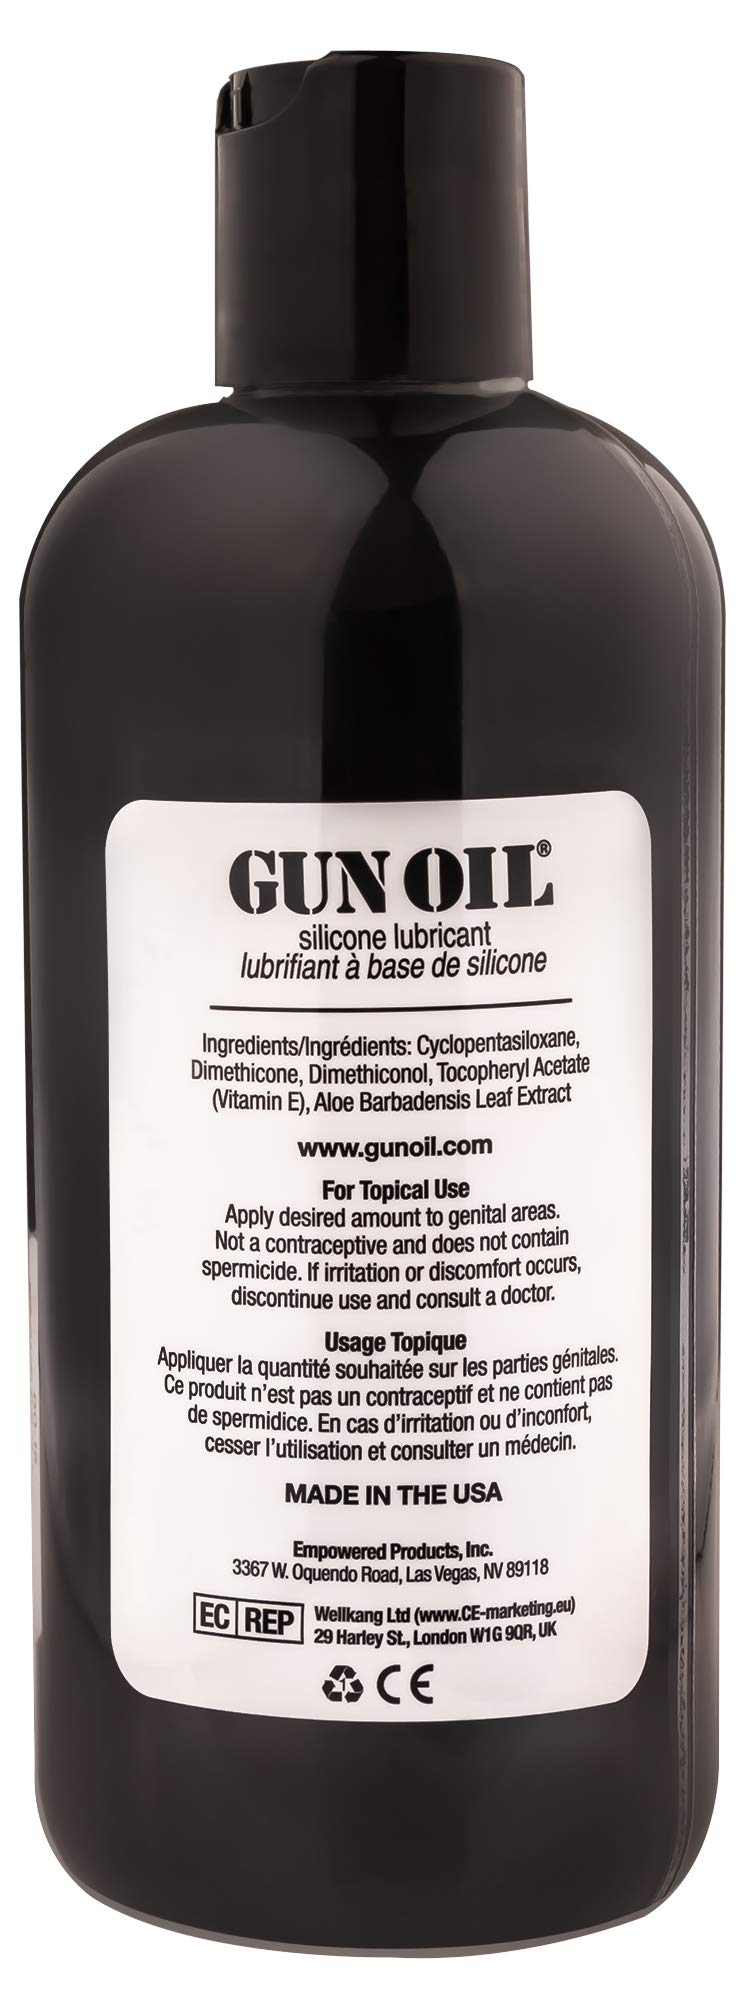 GUN OIL Silicone Lubricant - Hypoallergenic Silicone-Based Lubricant for Long-Lasting Lubrication (16 oz) by Gun Oil (Image #2)